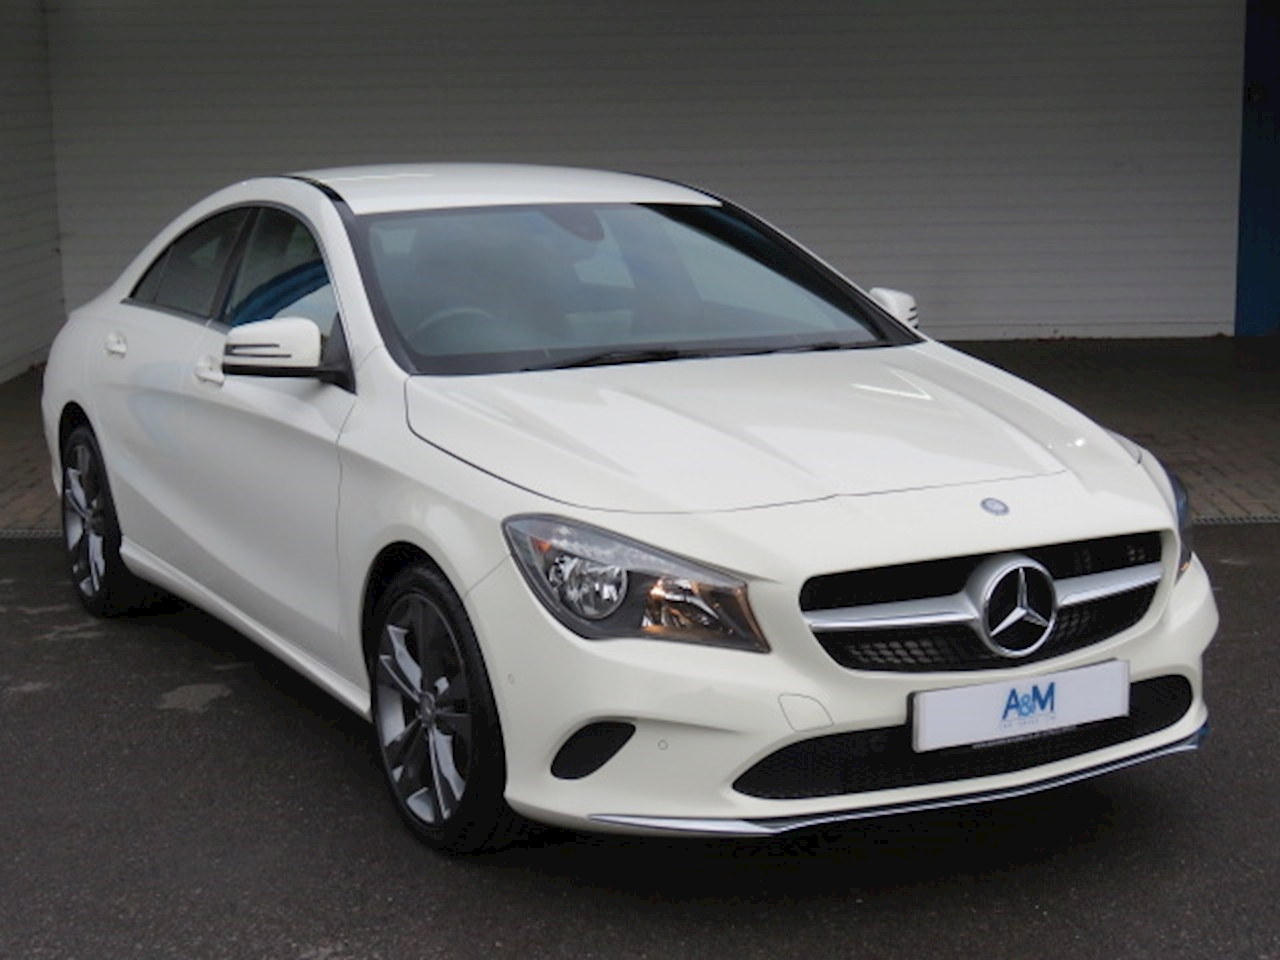 Mercedes-Benz CLA Class Sport Coupe 2.1 Manual Diesel